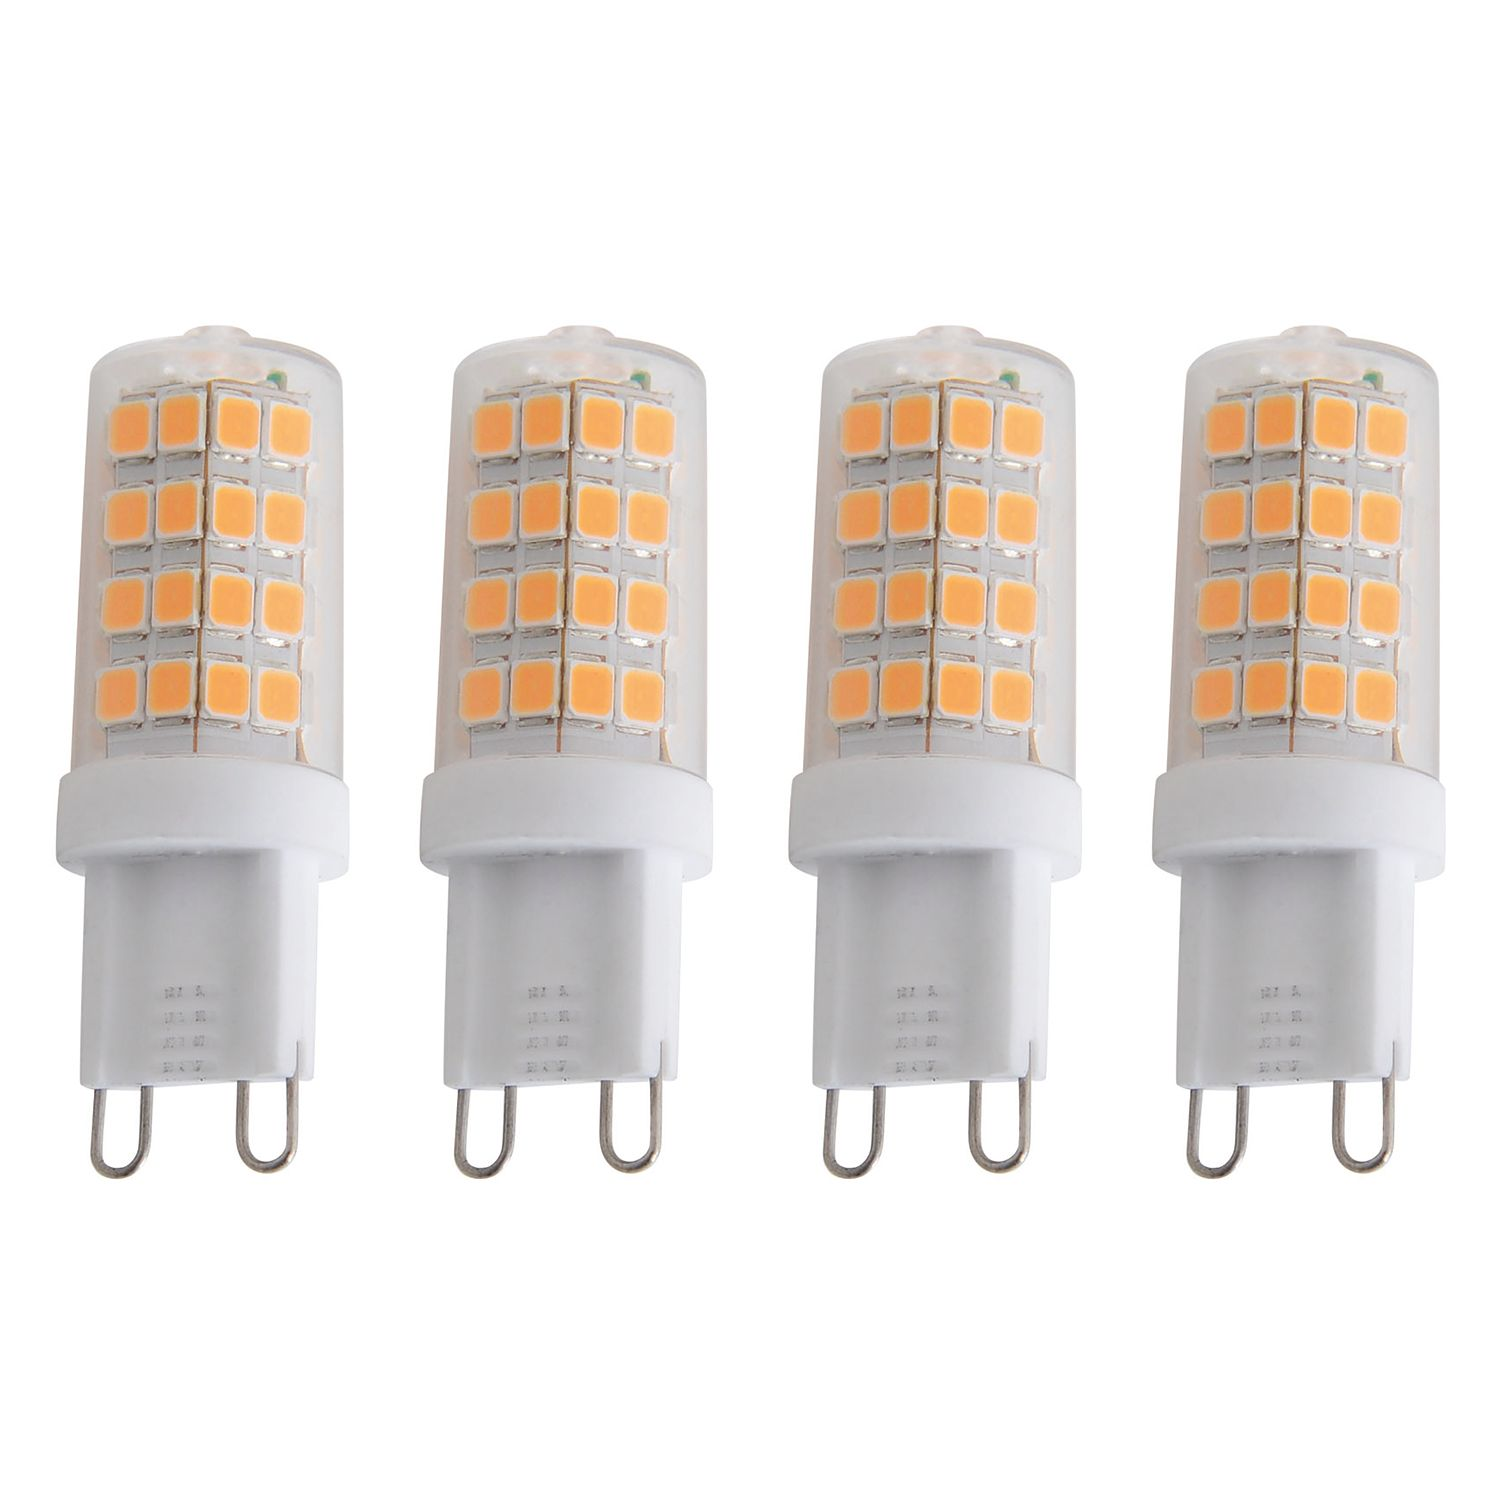 home24 LED-Leuchtmittel Catalina (4er-Set) | Lampen > Leuchtmittel > Led | Naeve